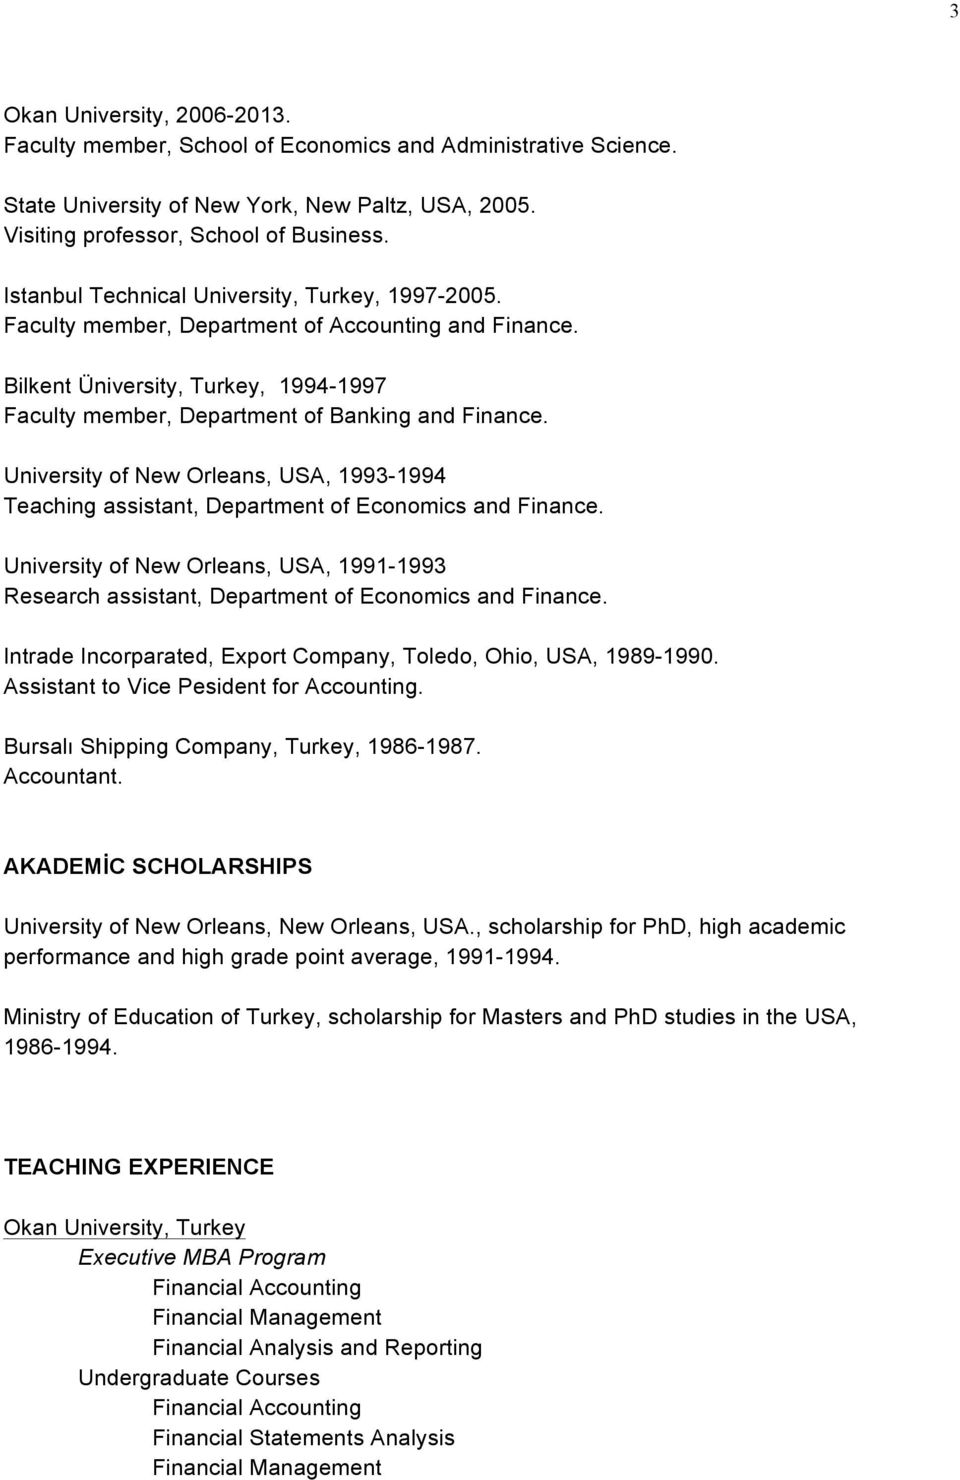 University of New Orleans, USA, 1993-1994 Teaching assistant, Department of Economics and Finance. University of New Orleans, USA, 1991-1993 Research assistant, Department of Economics and Finance.